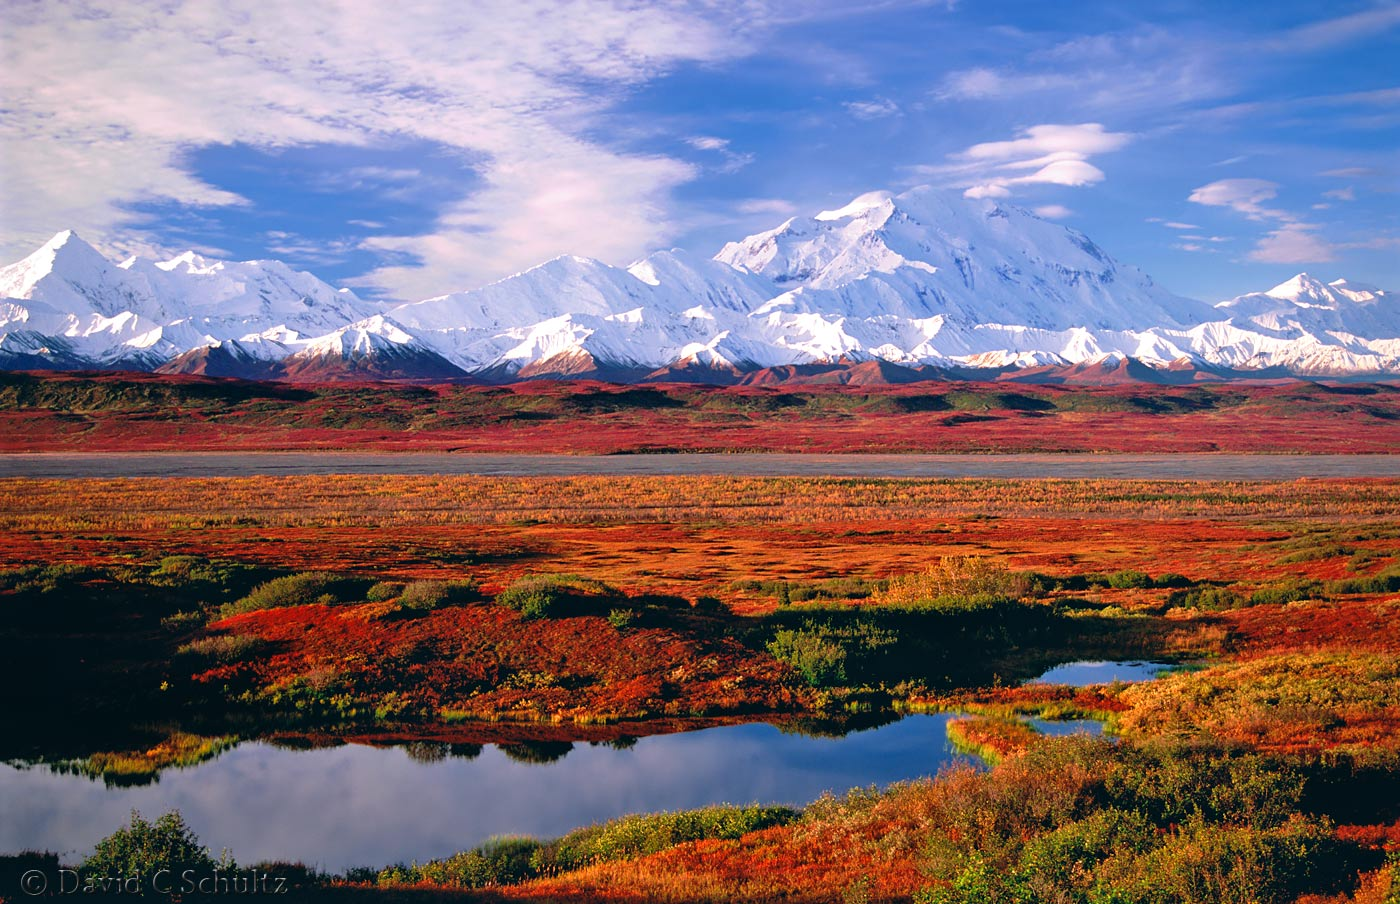 Mount McKinley in Denali National Park, Alaska - Image #153-303